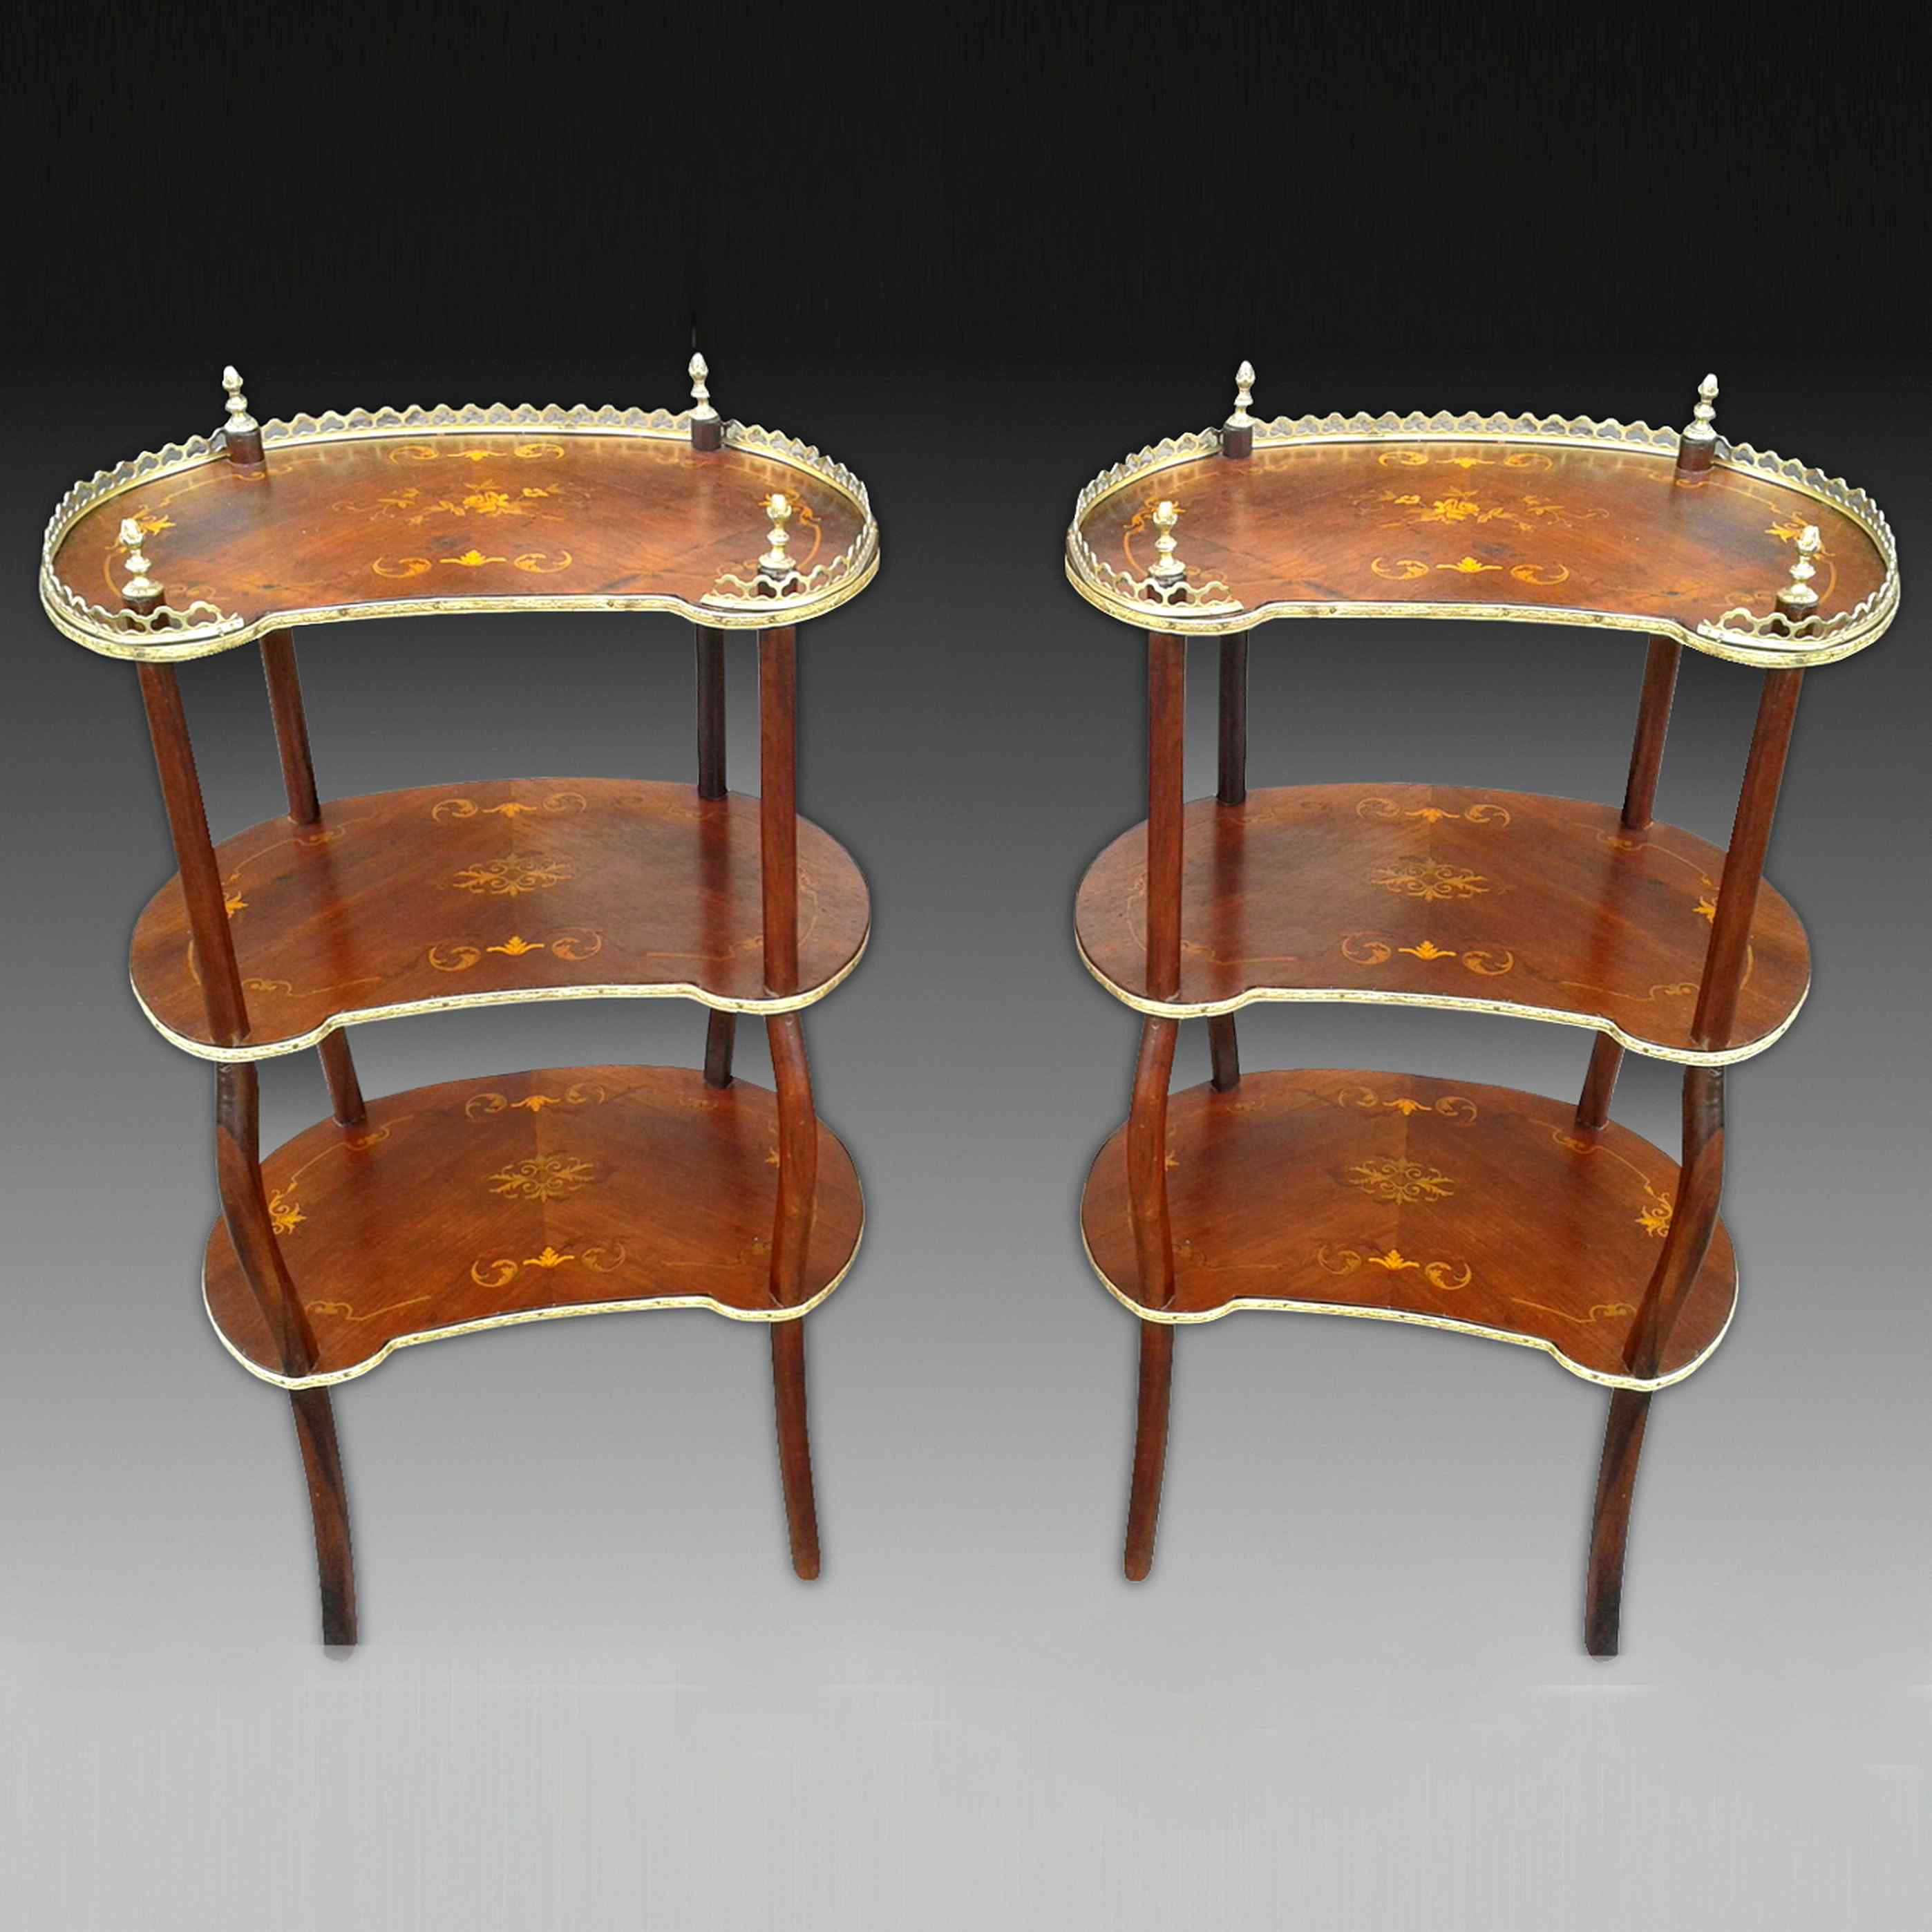 Antique Pair Napoleon III Etageres Shelves Tables -19th cent